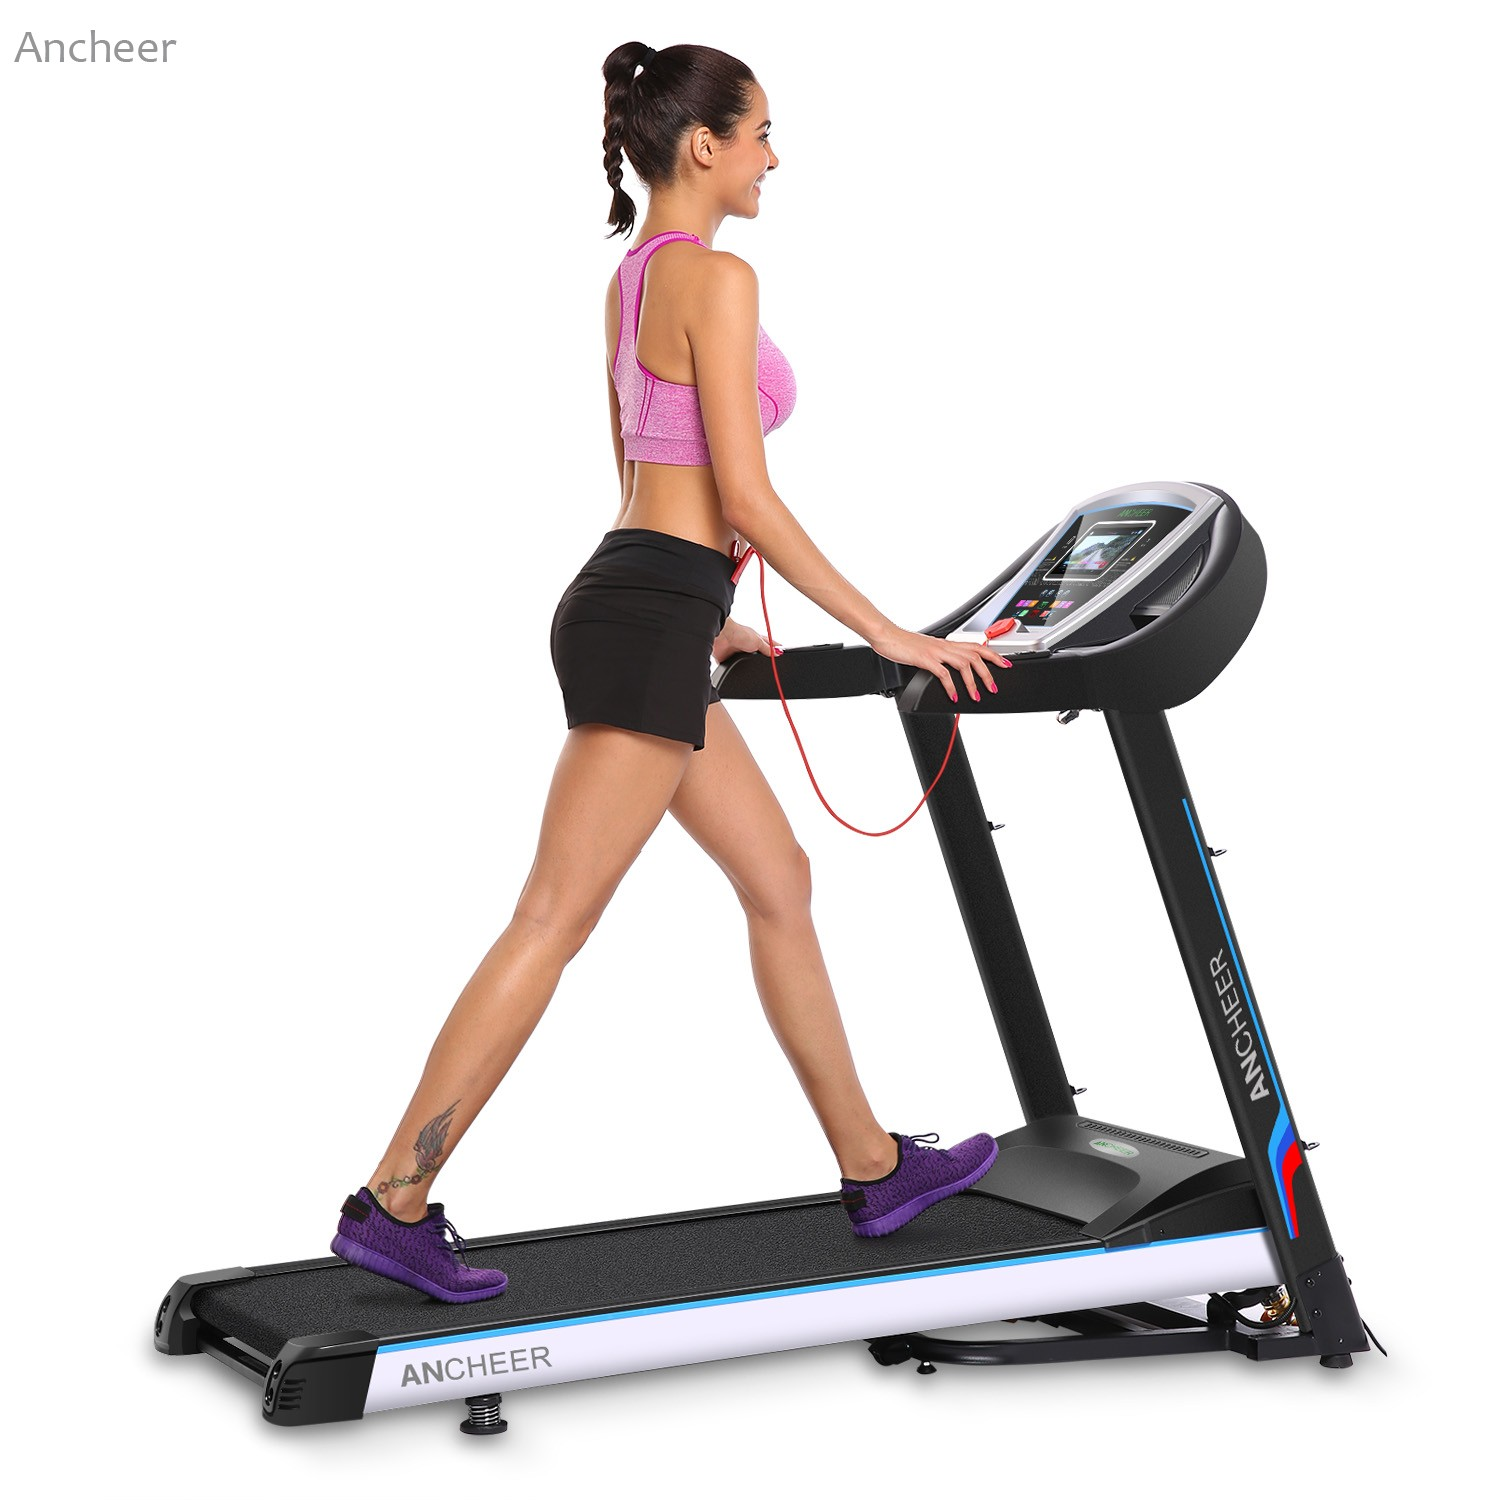 Ancheer electric treadmill fitness folding